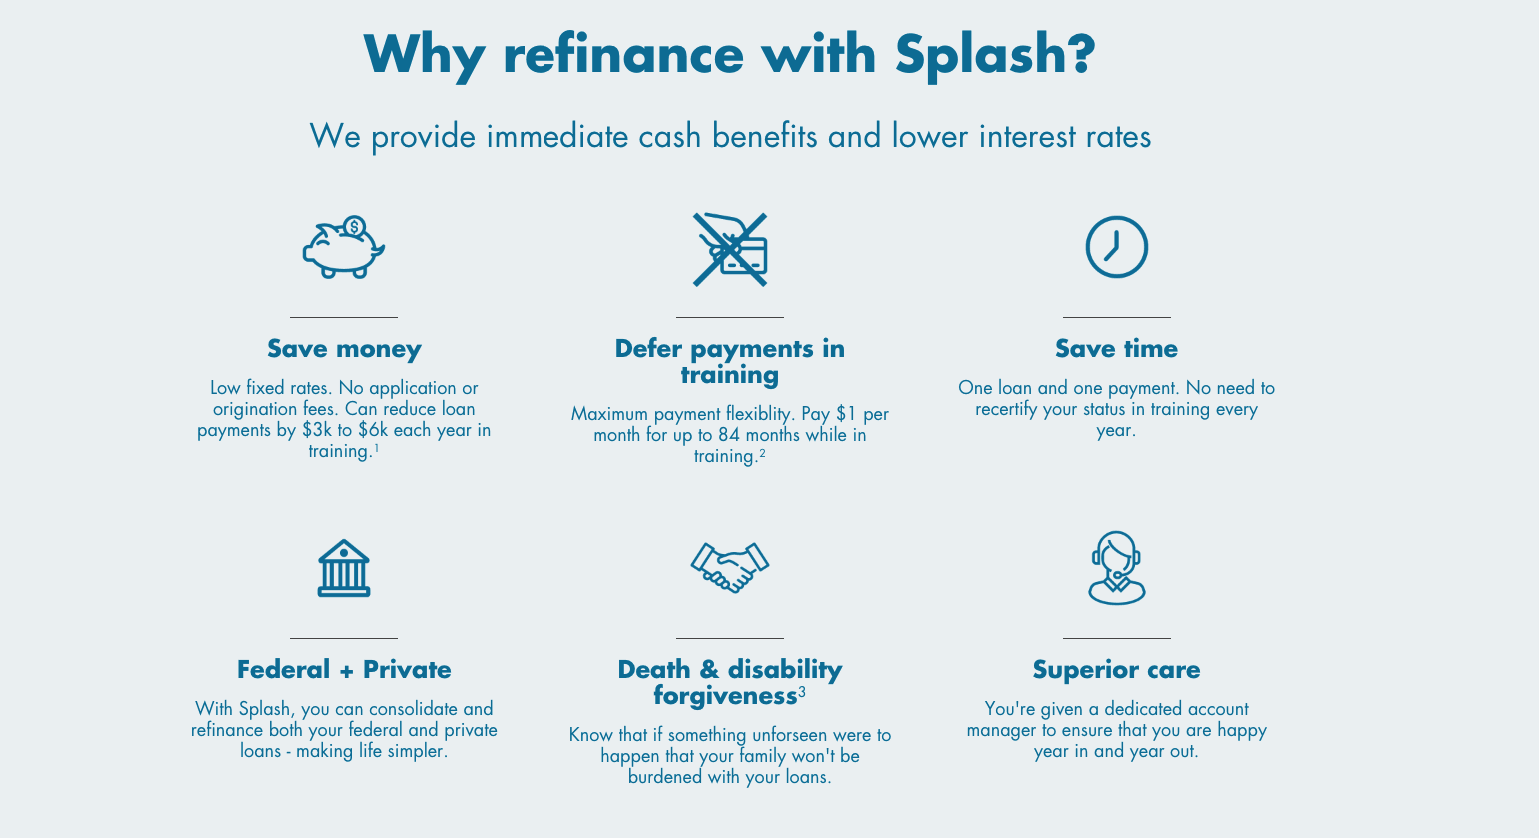 This image helps to showcase lender information for Splash Financial.